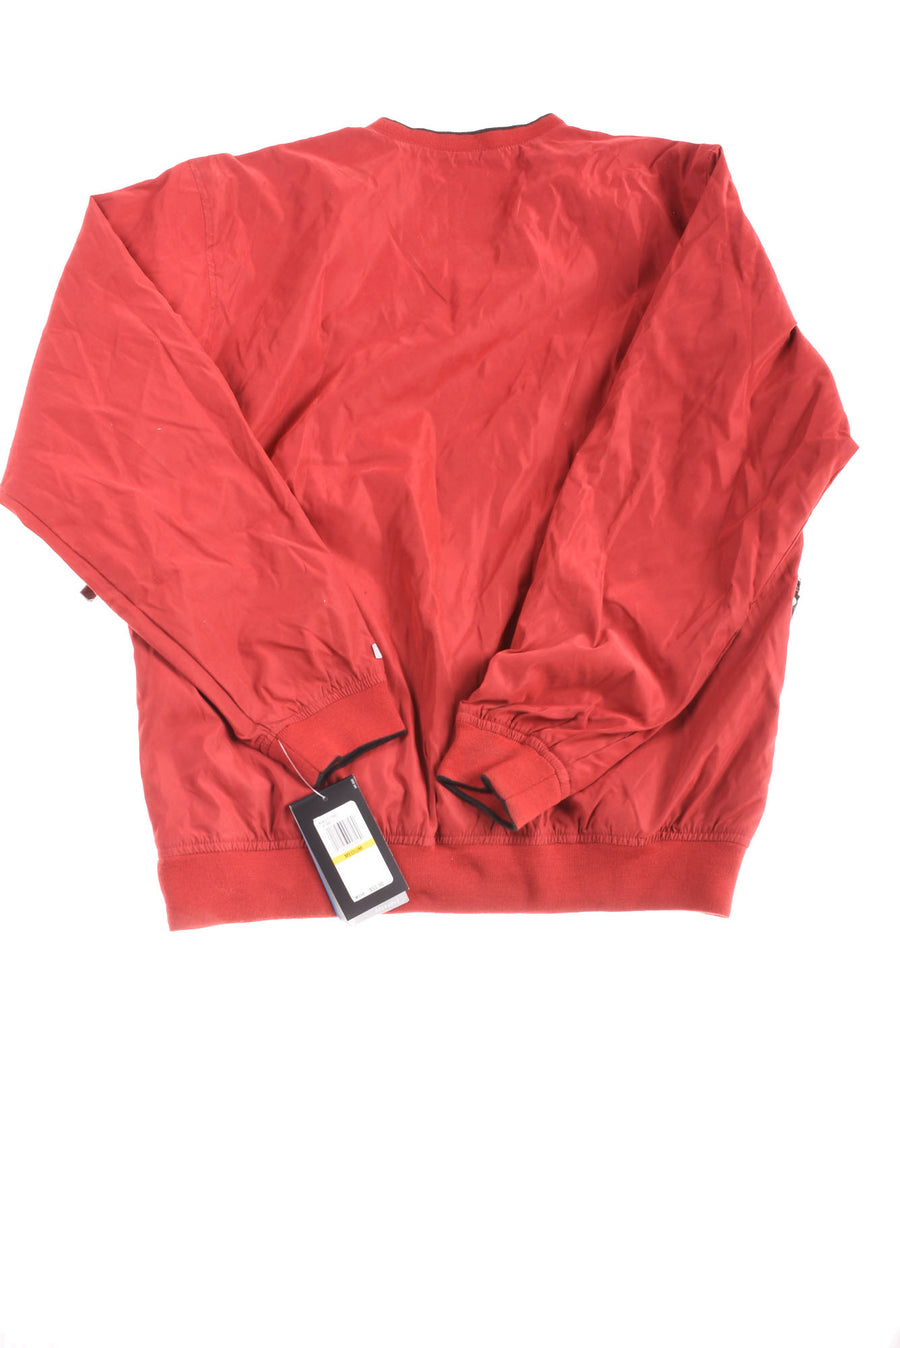 NEW IZOD Men's Jacket Medium Red